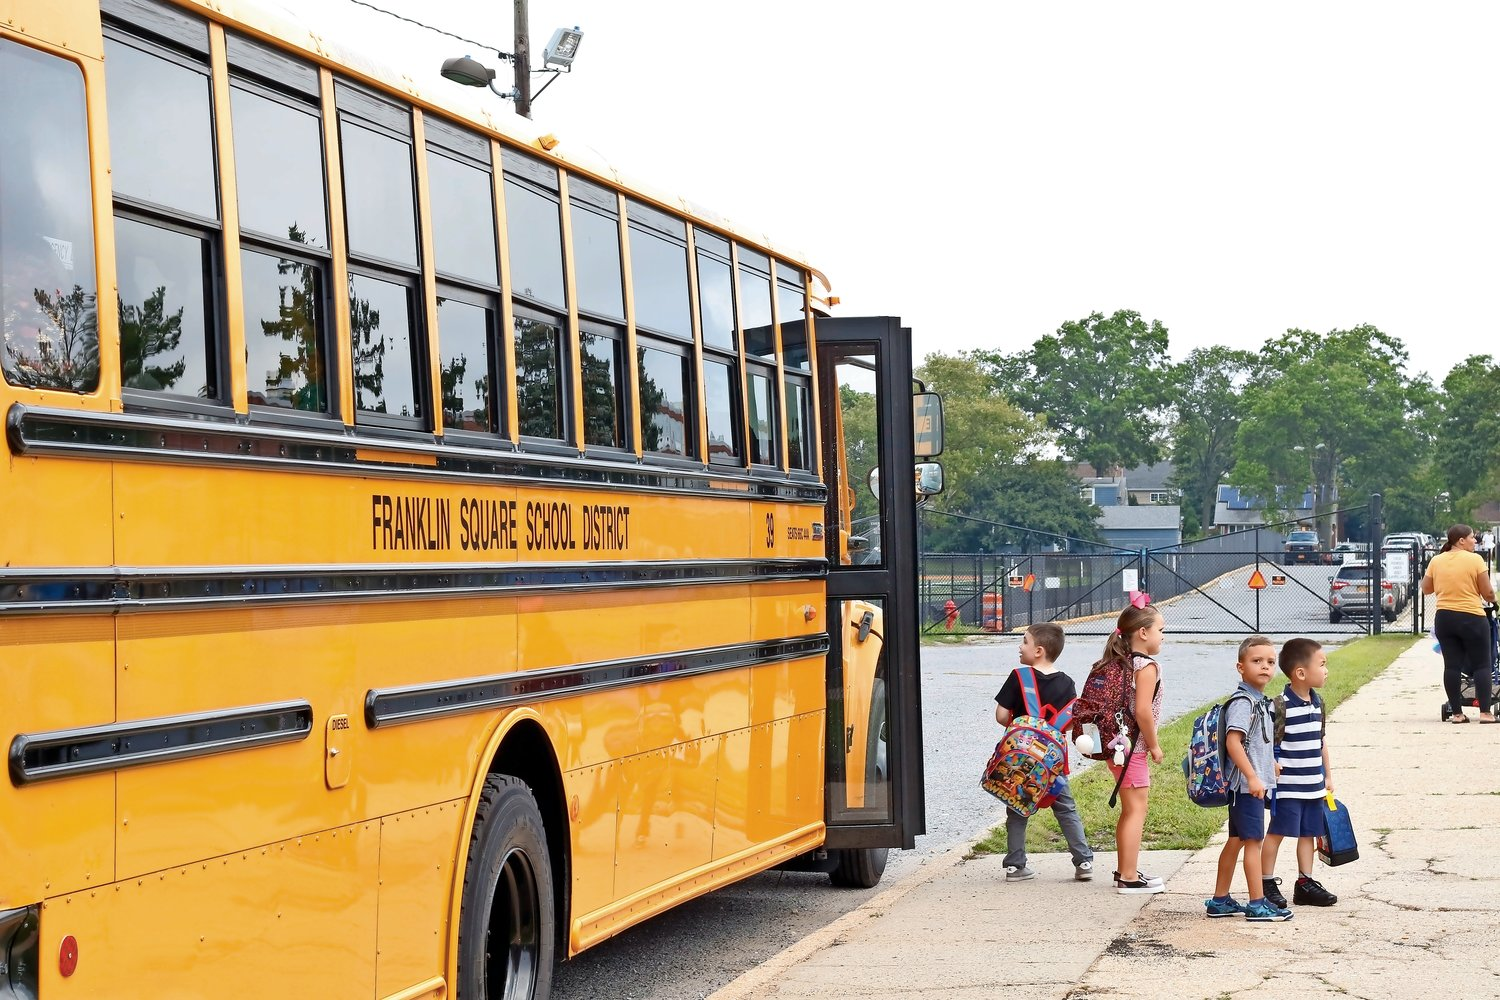 Students departed the bus, at right, on their first day of classes at Washington Street School on Sept. 4.